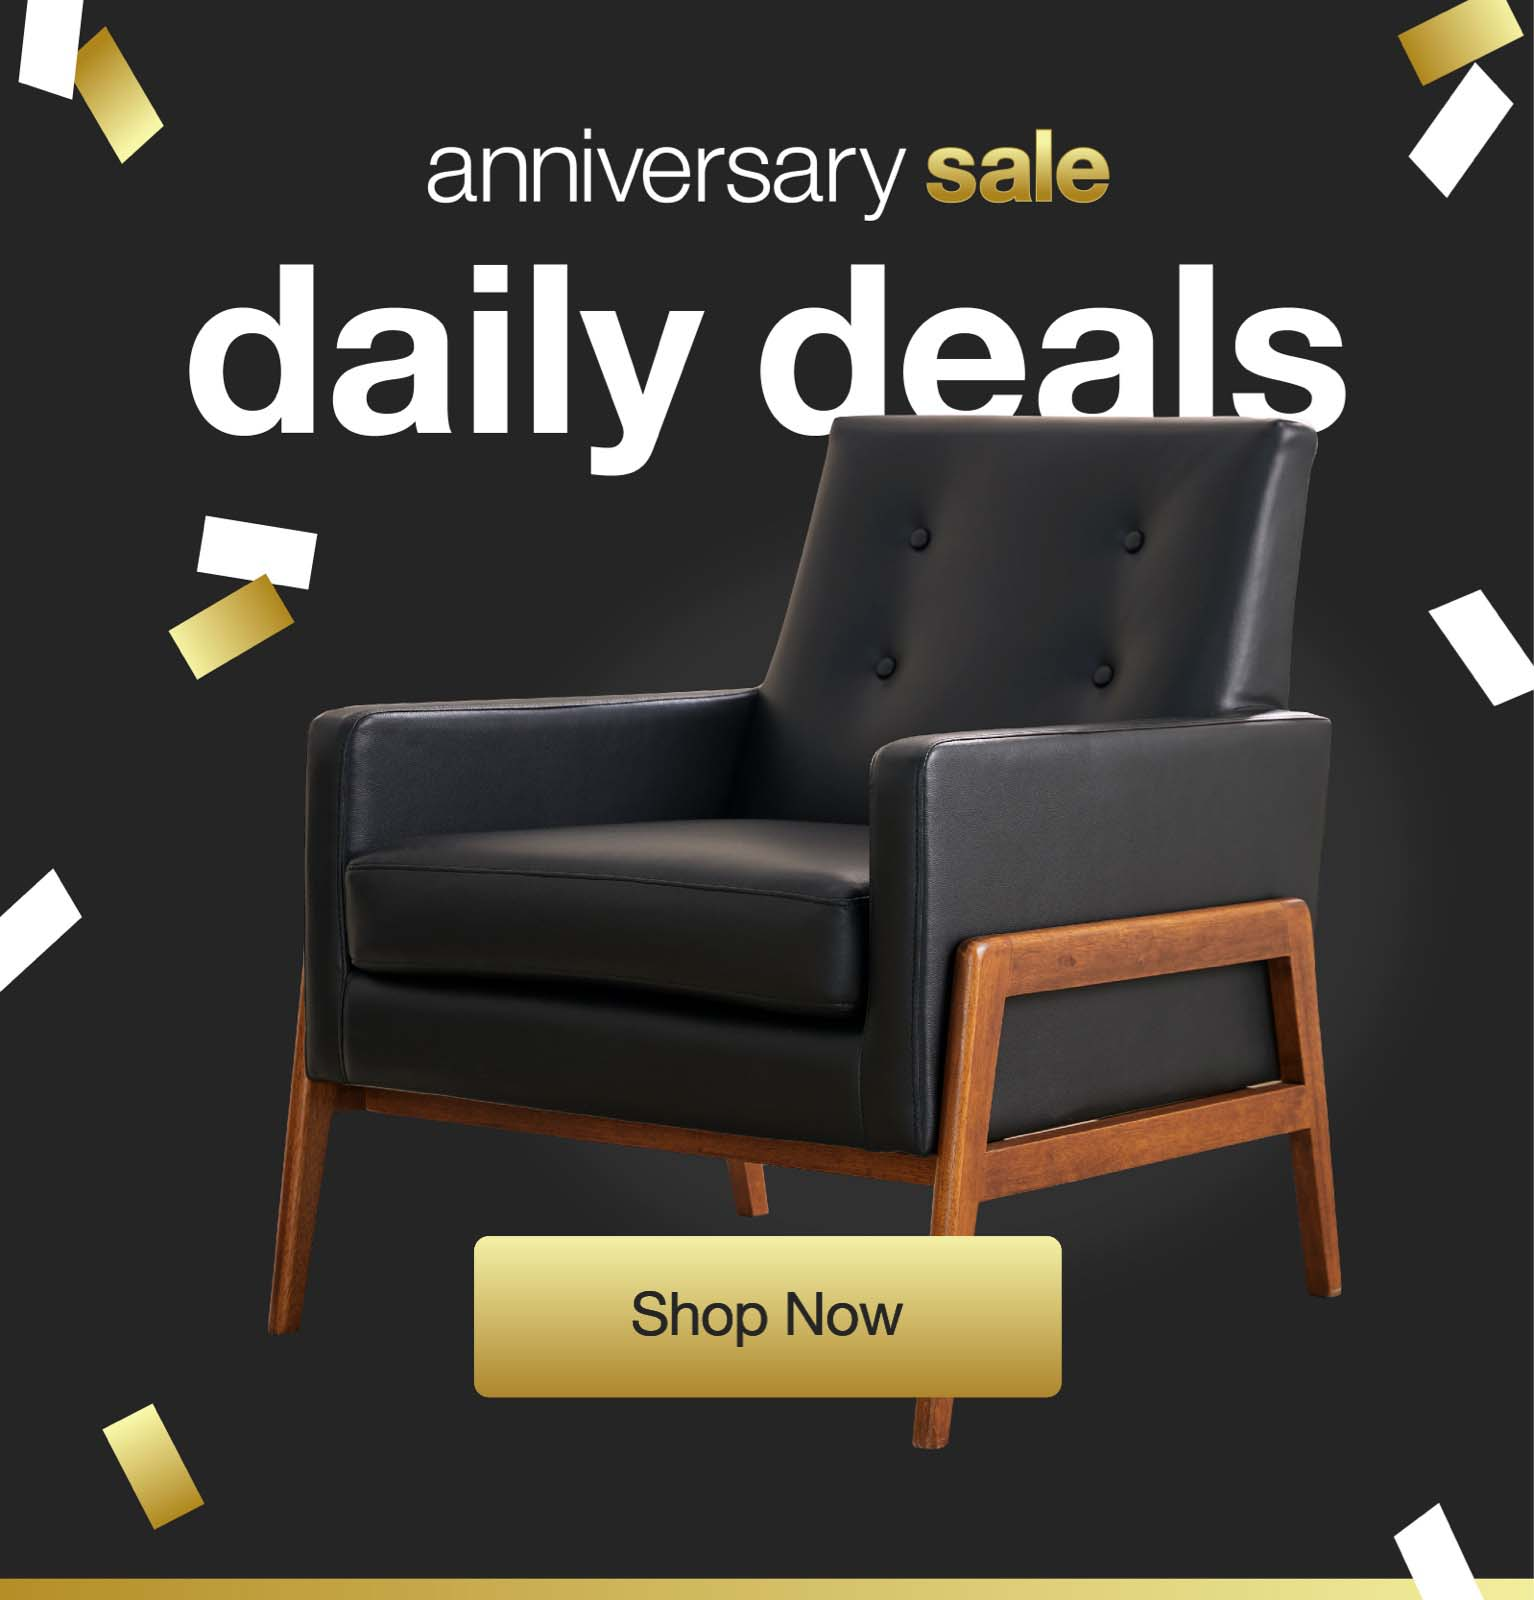 a black leather club chair at overstock anniversary daily deals with 22 new deals daily and free shipping on everything.